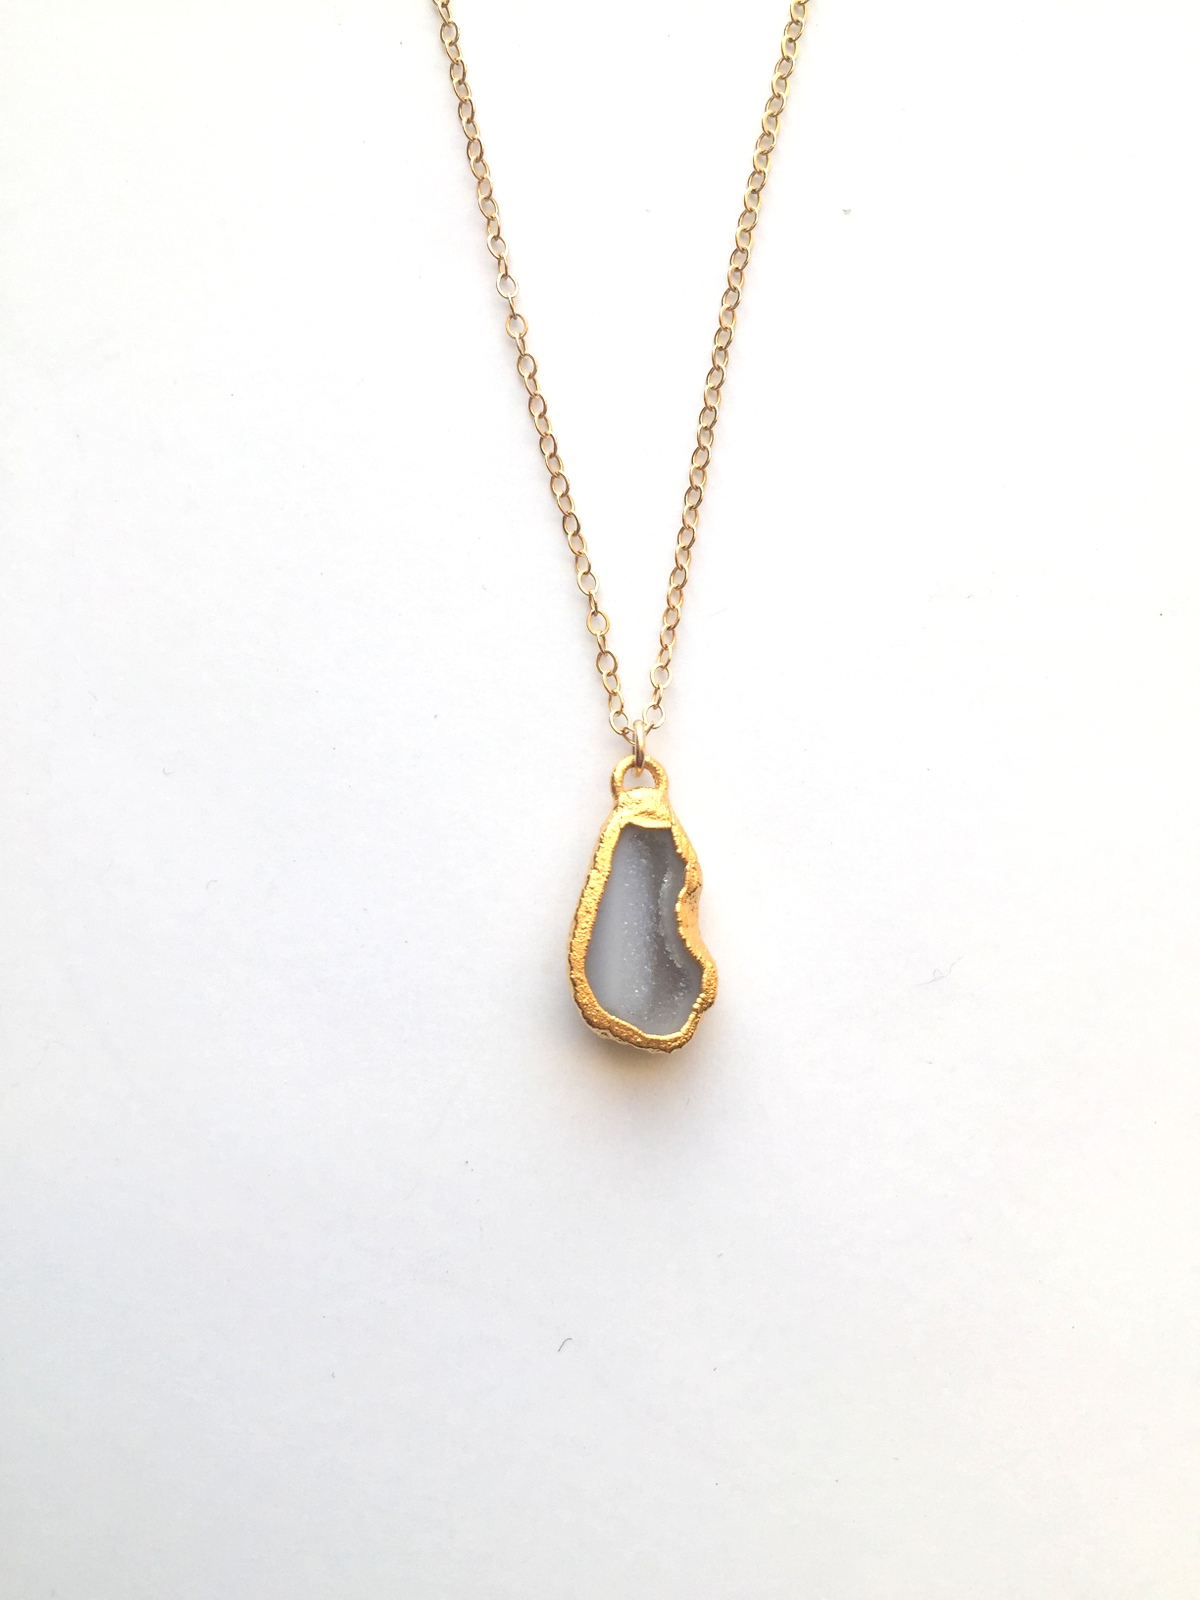 triangle grey charm crowdyhouse pendant shop tiny gold on necklace